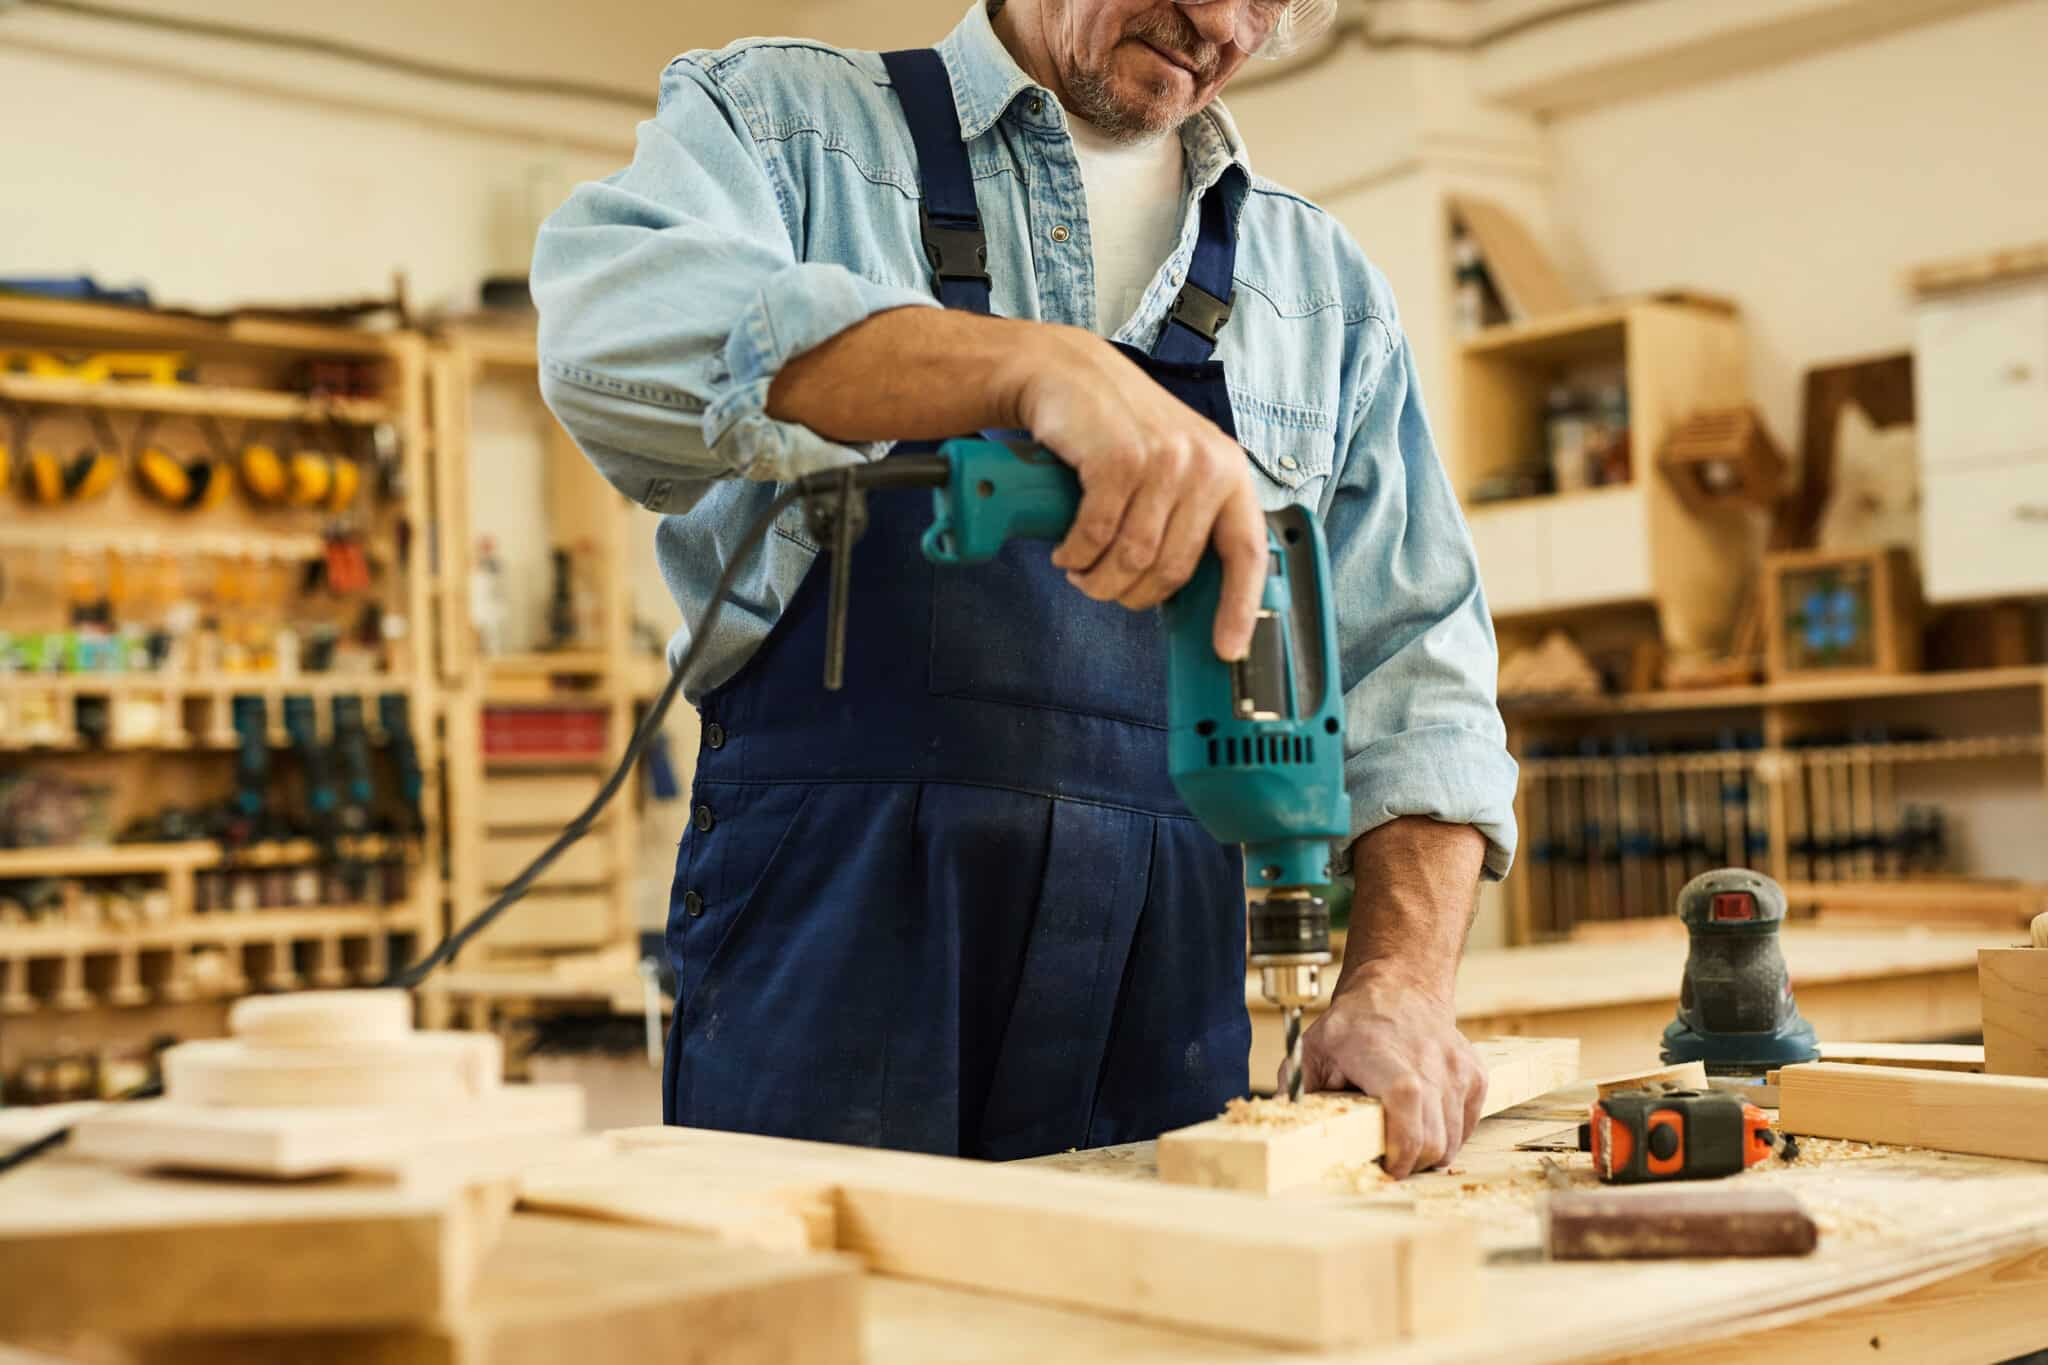 Joinery Companies can be eligible for R&D Tax Credit Relief